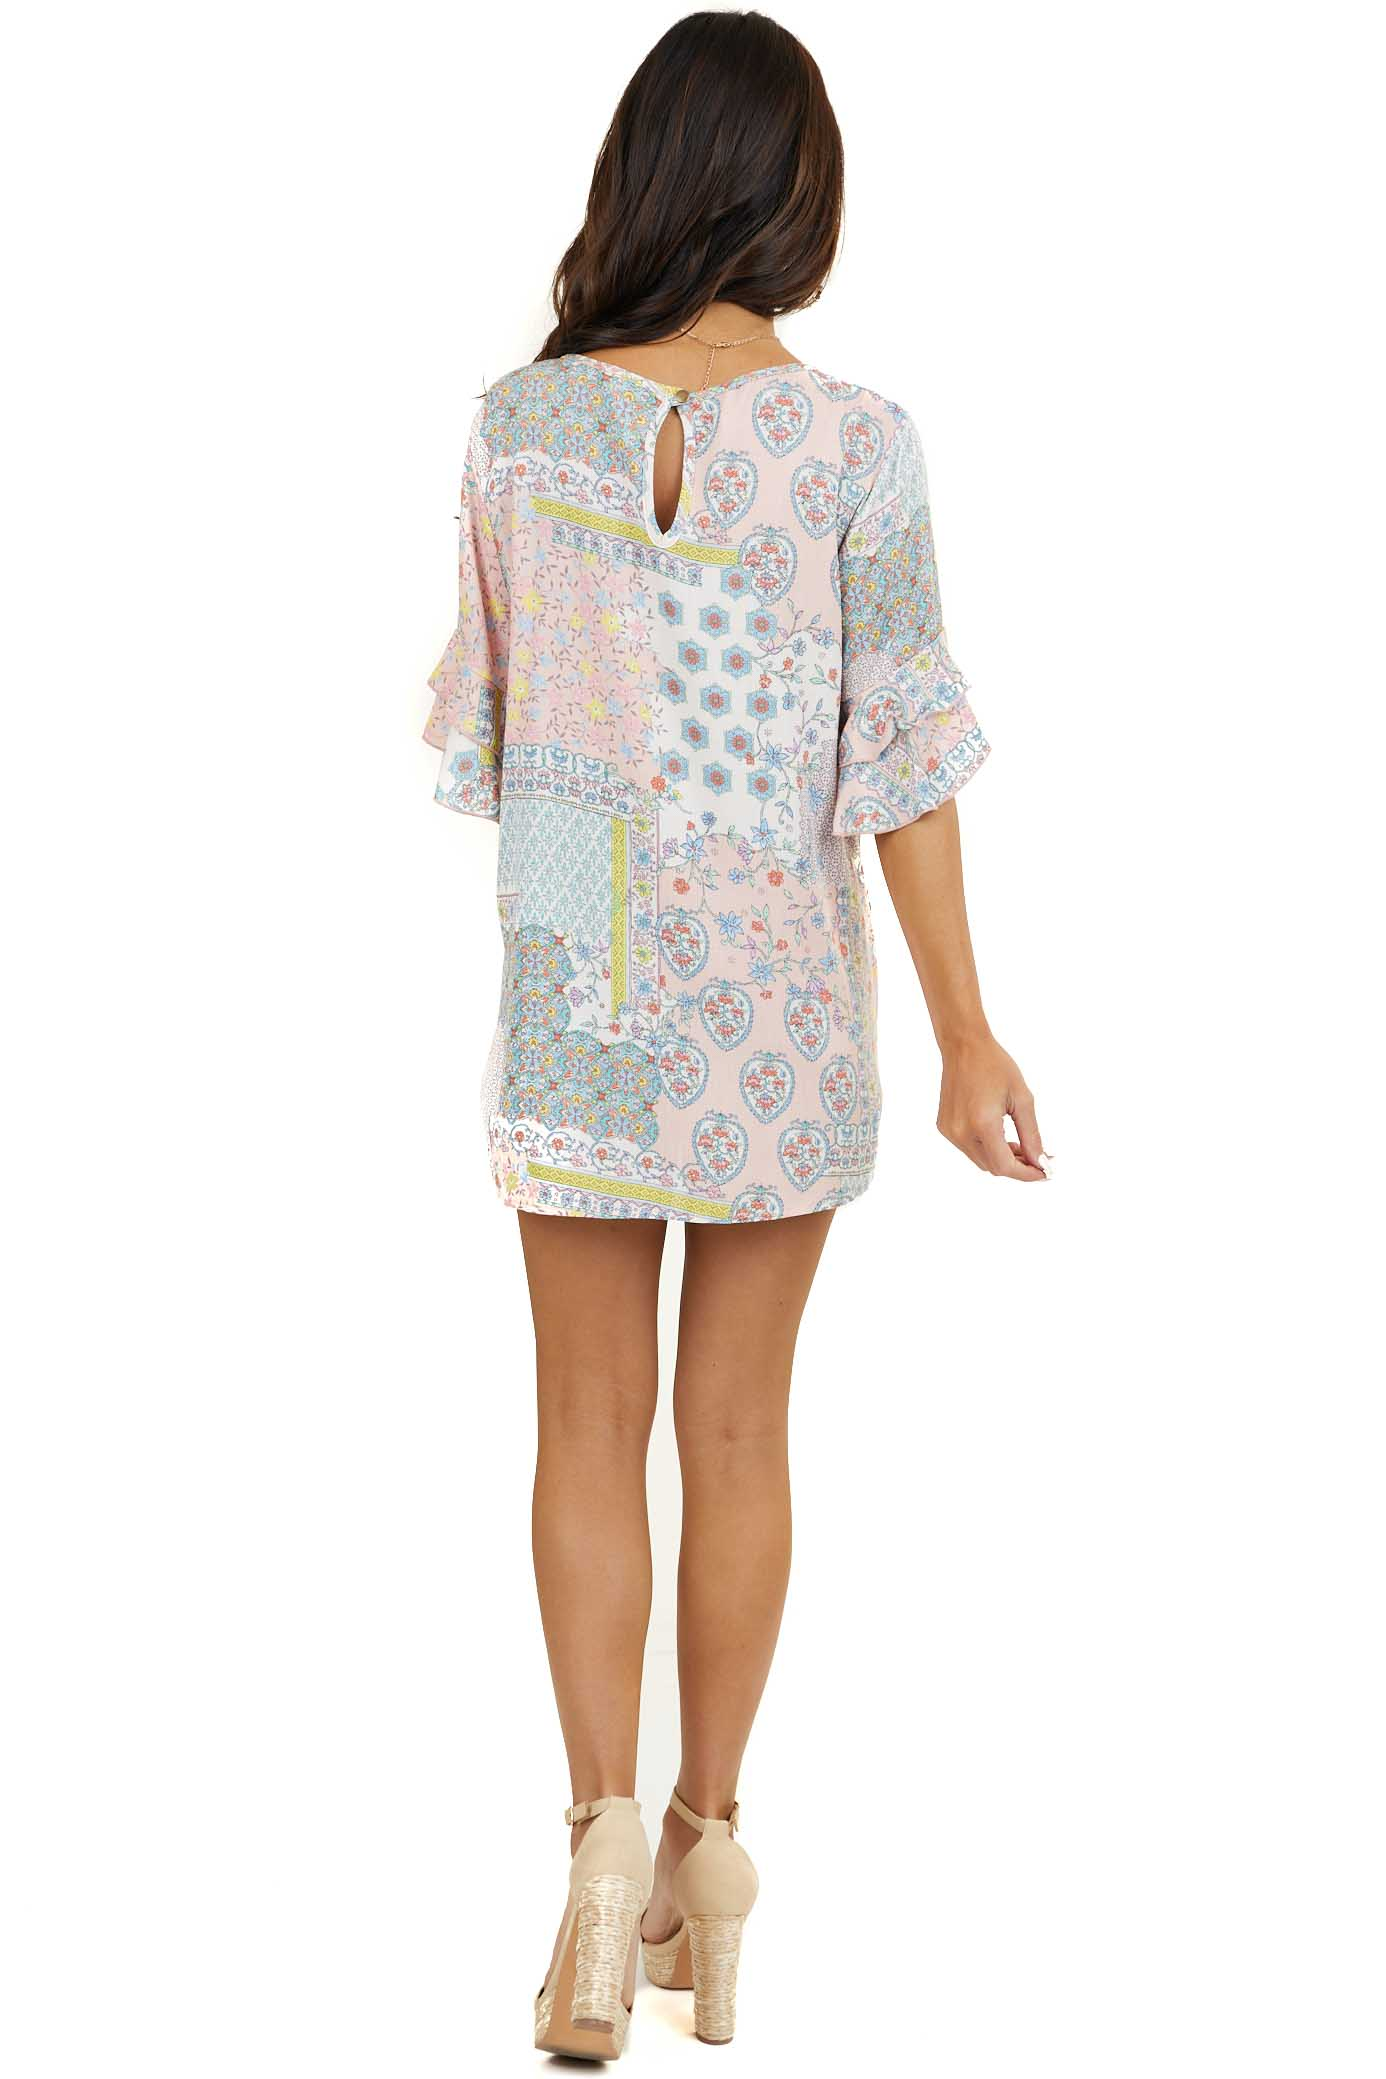 Pale Pink Floral Printed Woven Top with Short Ruffle Sleeves